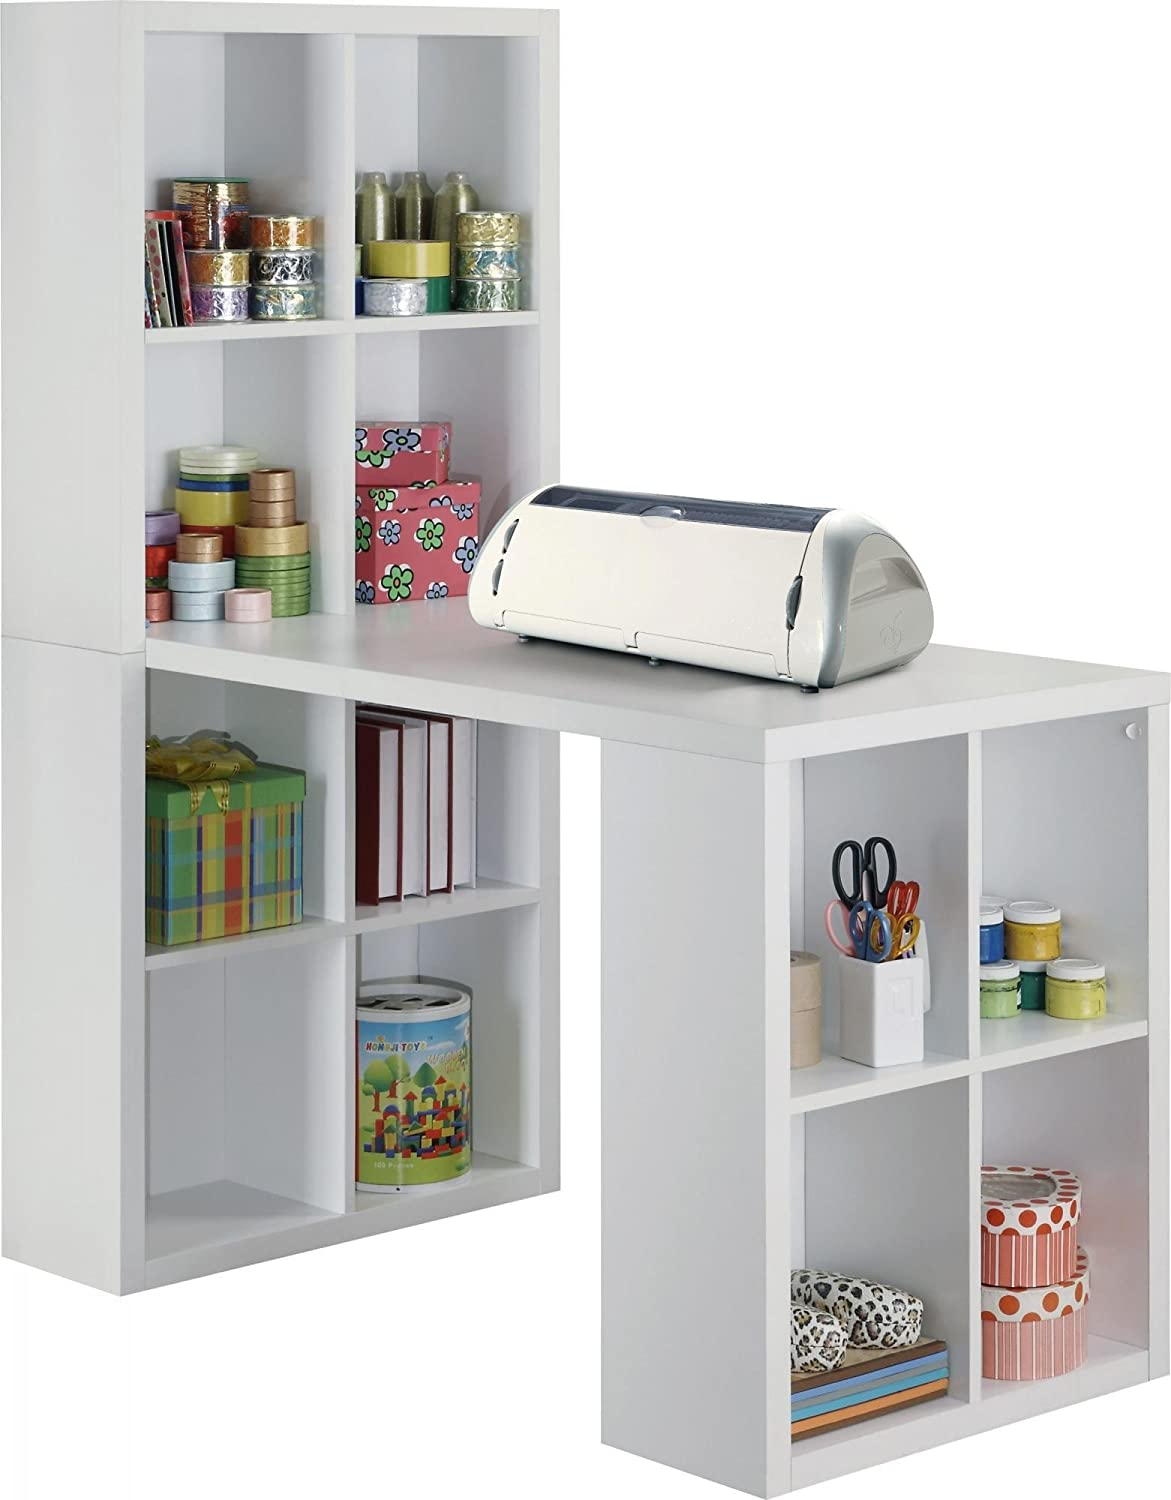 Altra Furniture Hollow Core Hobby Desk, White: Amazon.in: Home & Kitchen